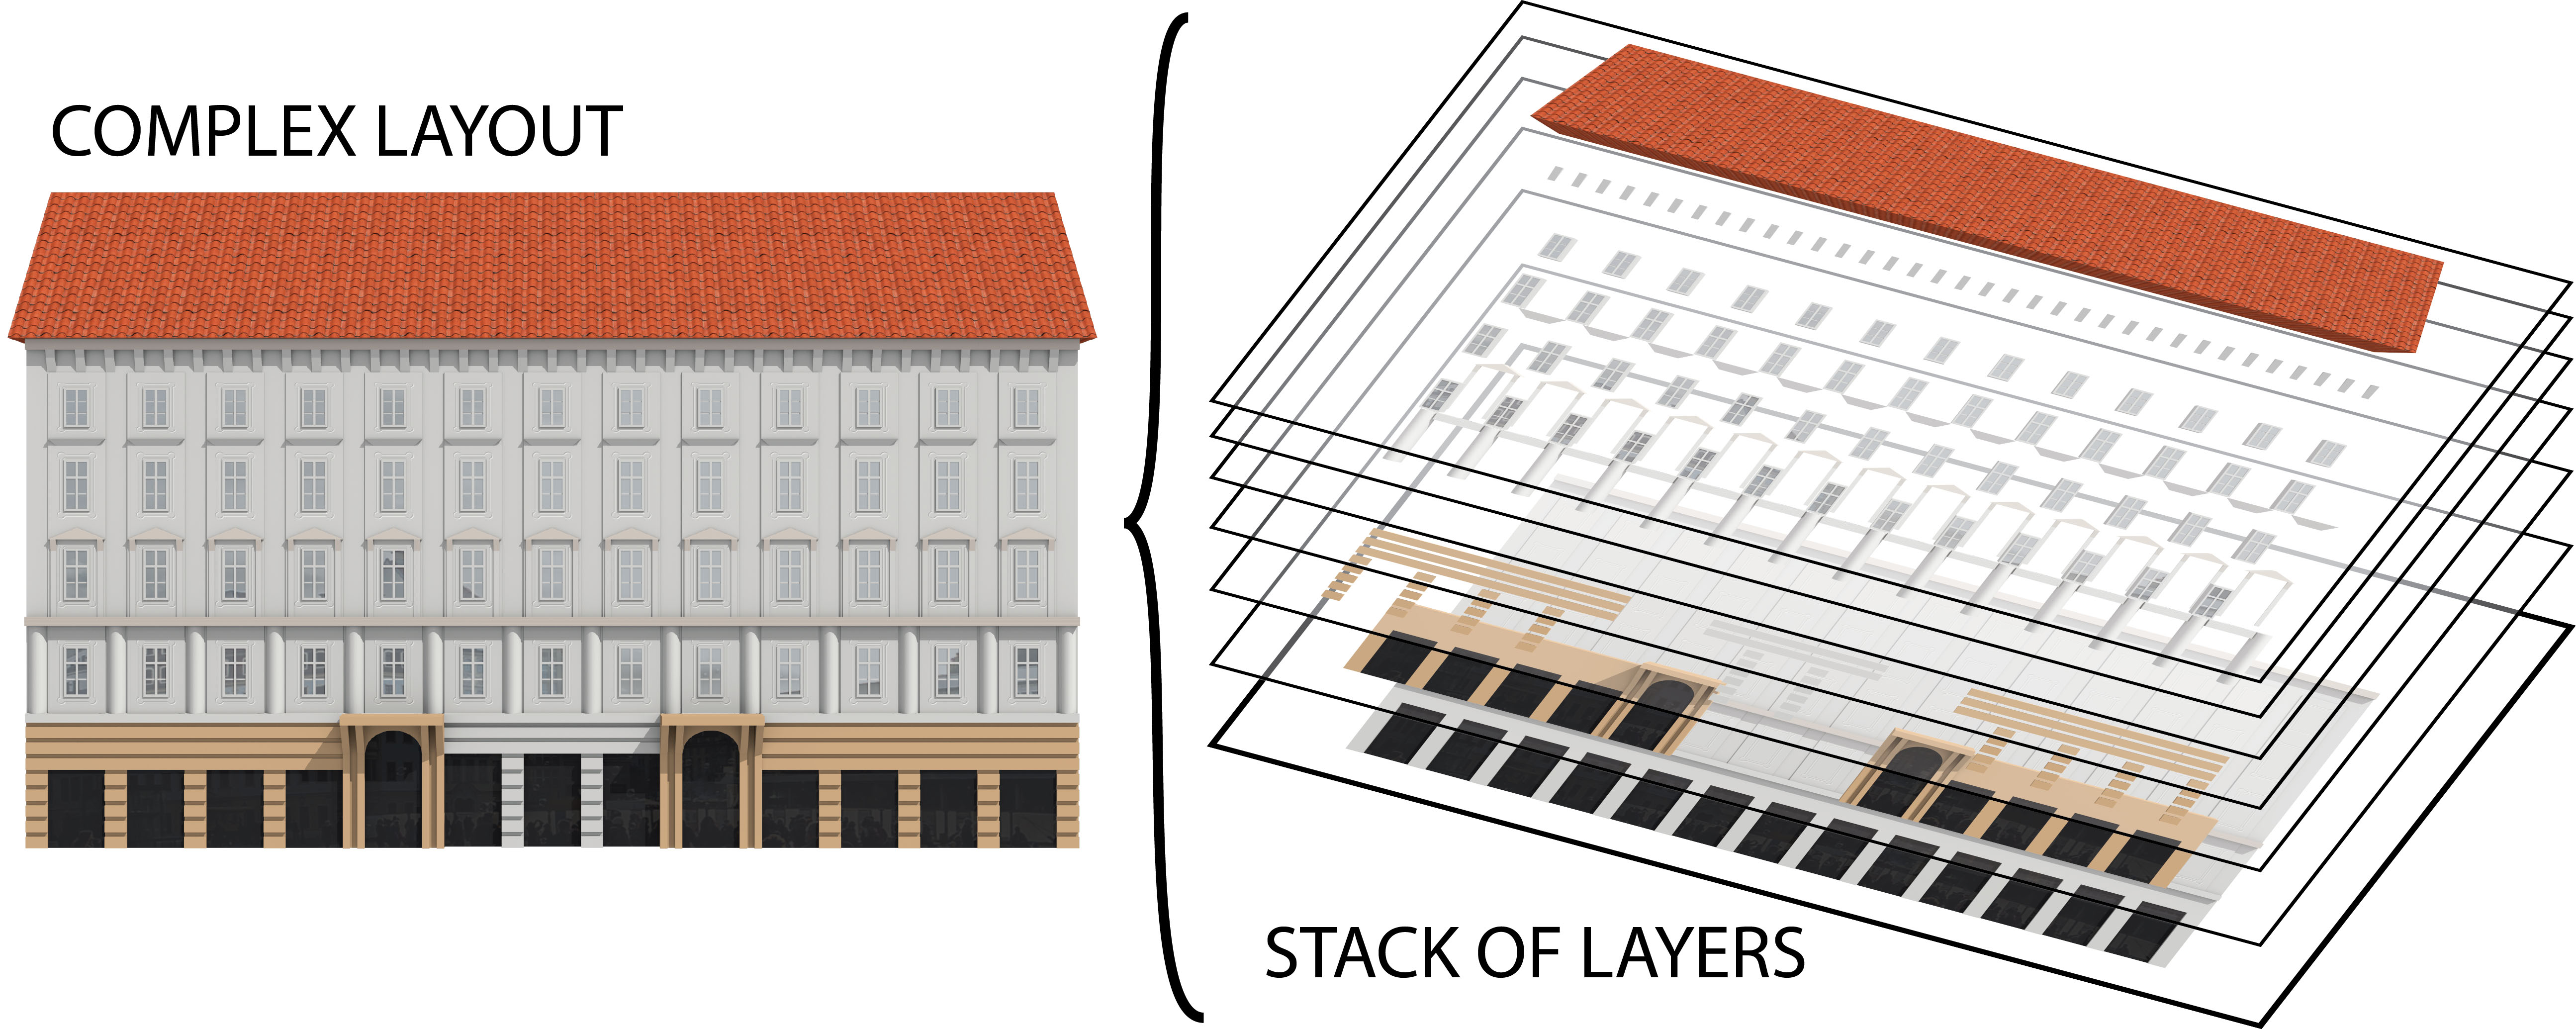 Layer-Based Procedural Design of Façades